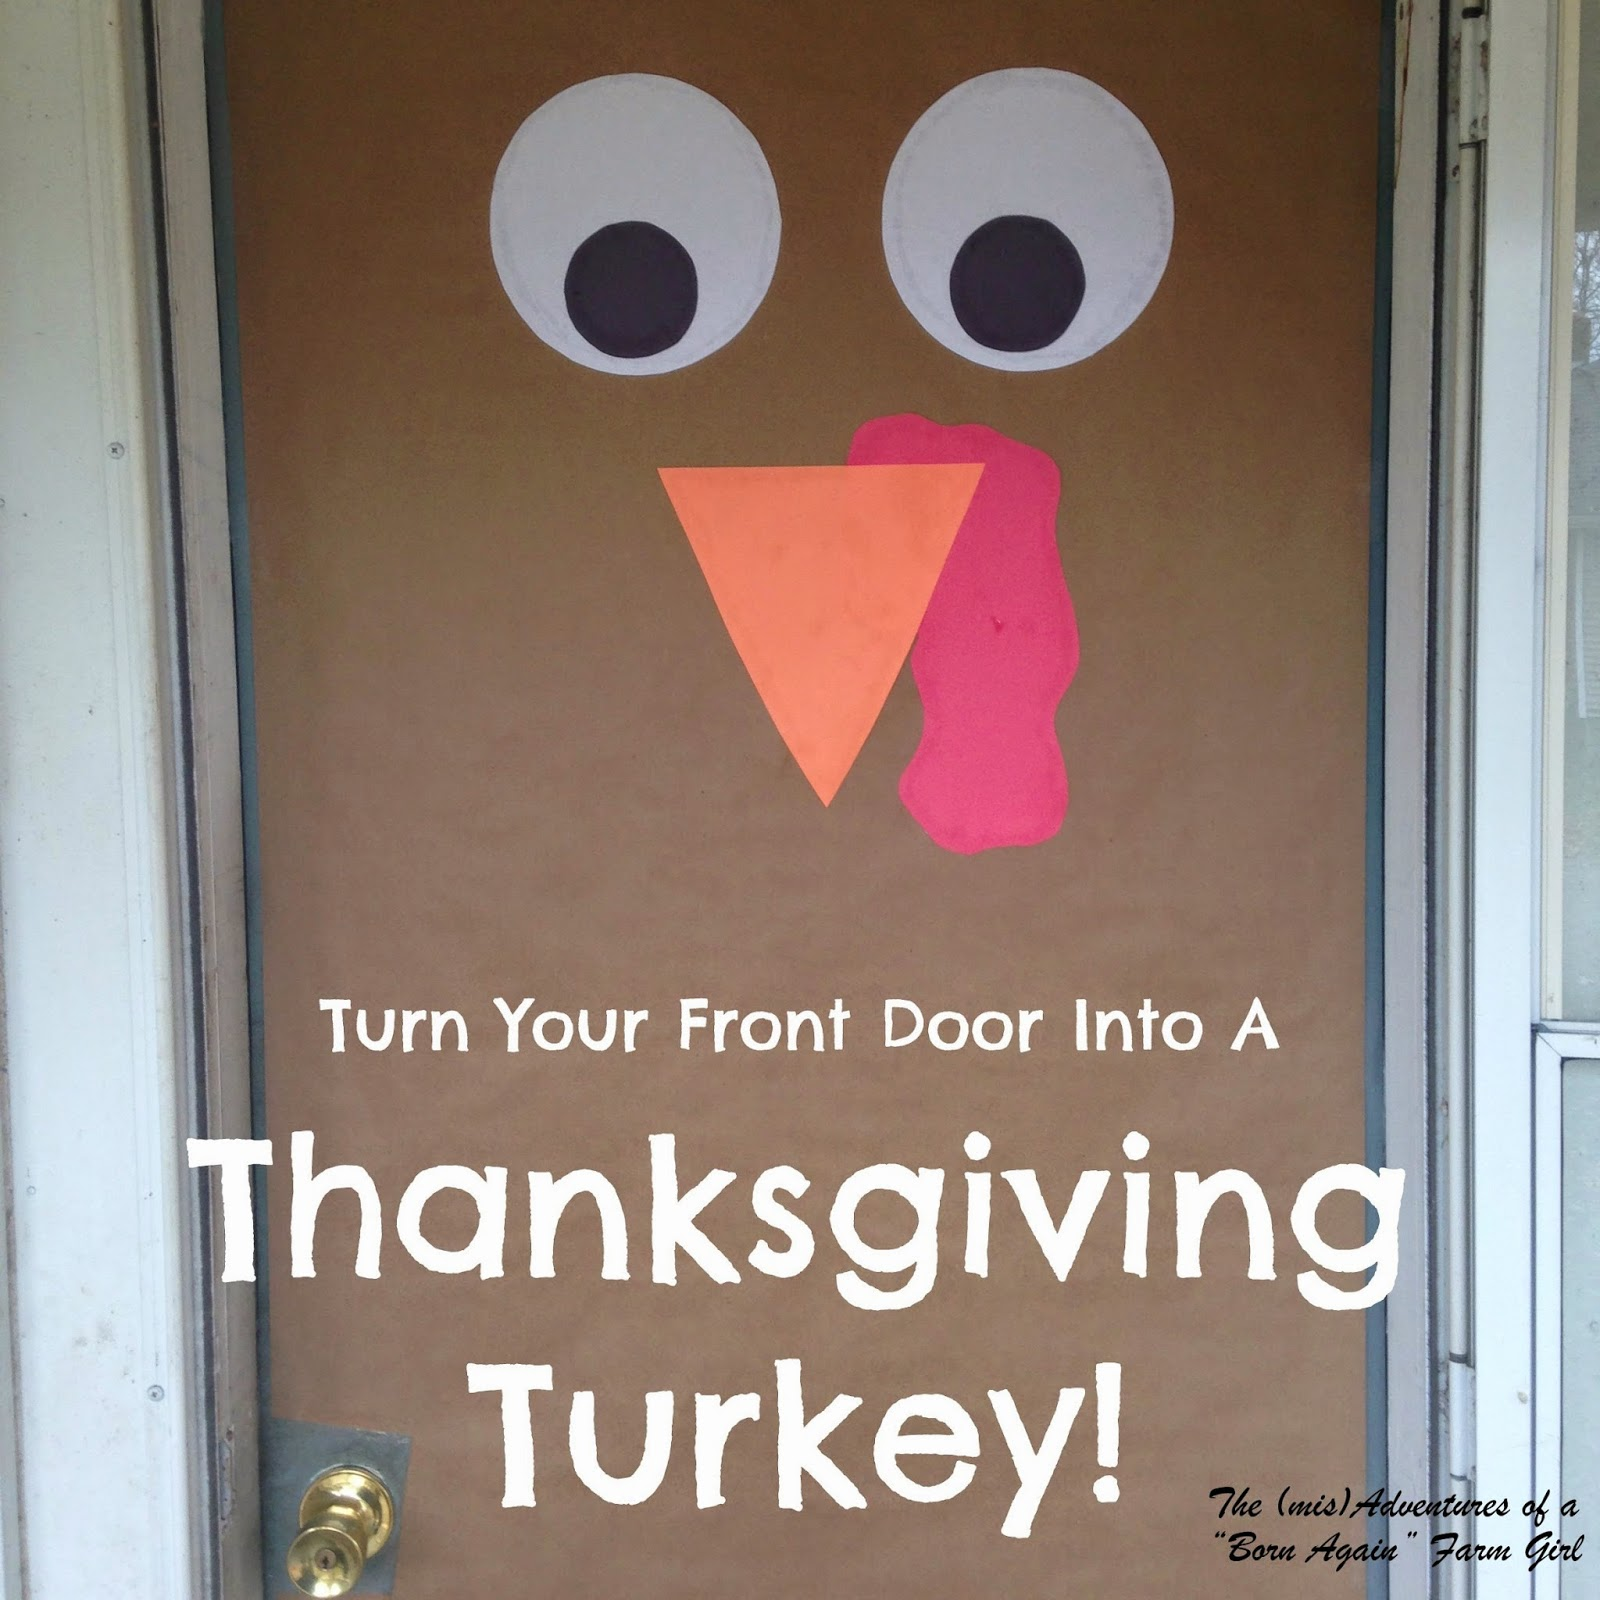 Turn Your Front Door Into A Thanksgiving Turkey!